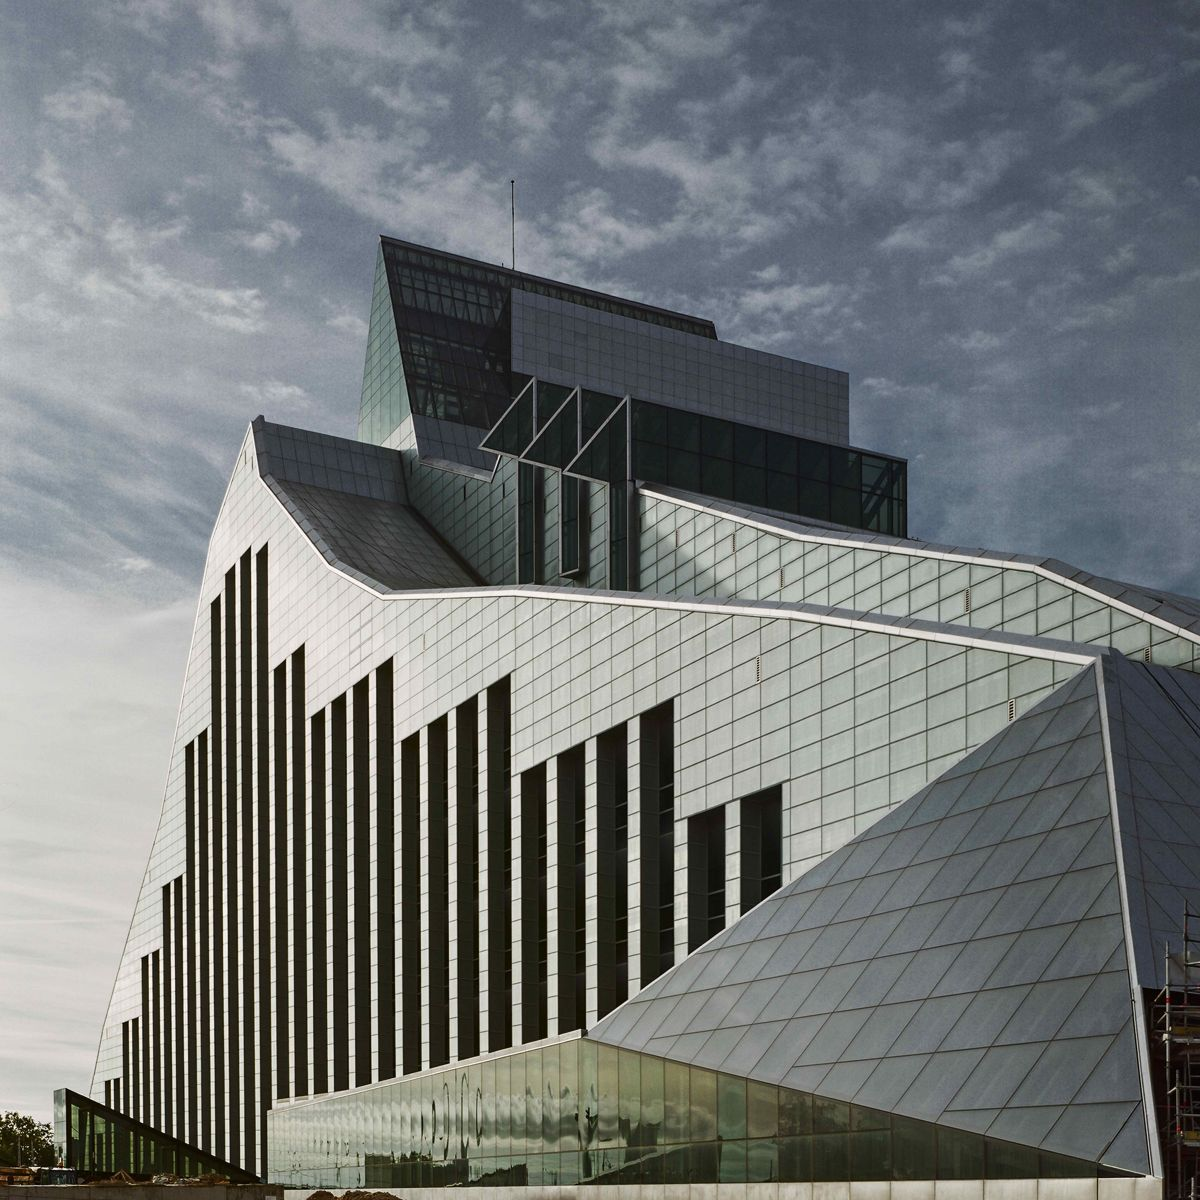 National Library of Latvia, Riga